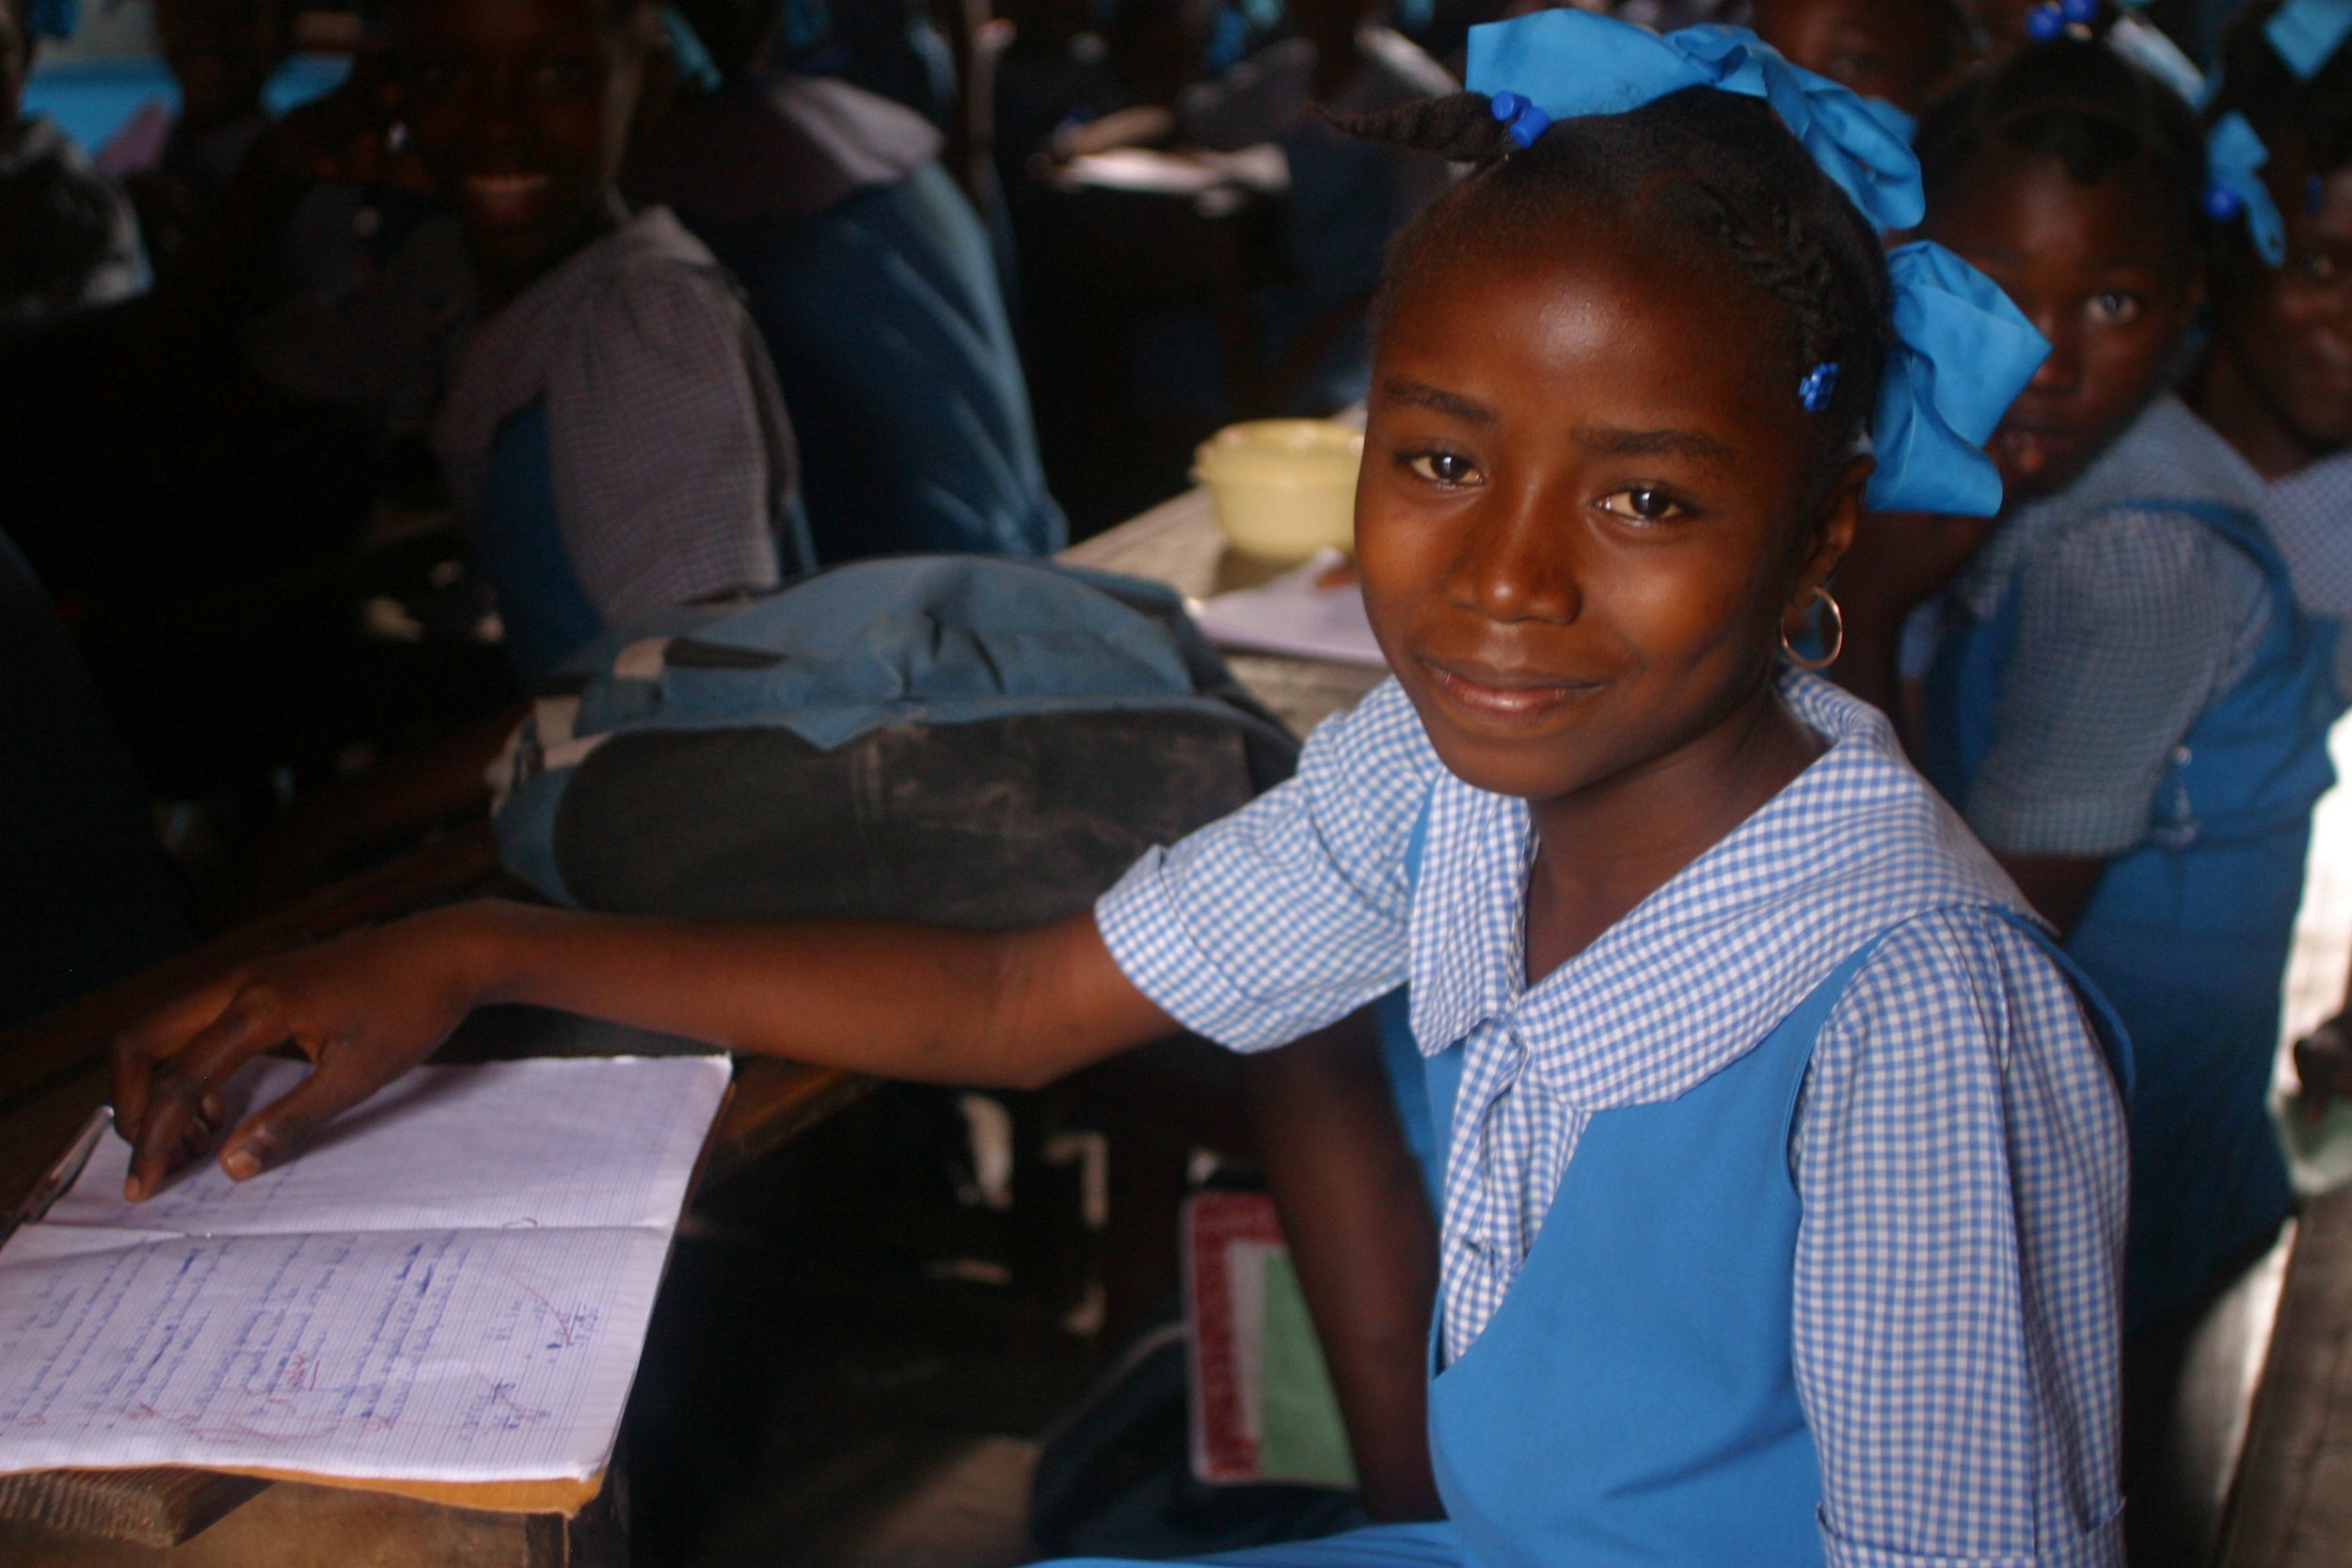 Haiti 2004 (Photo by Tom Haskell)